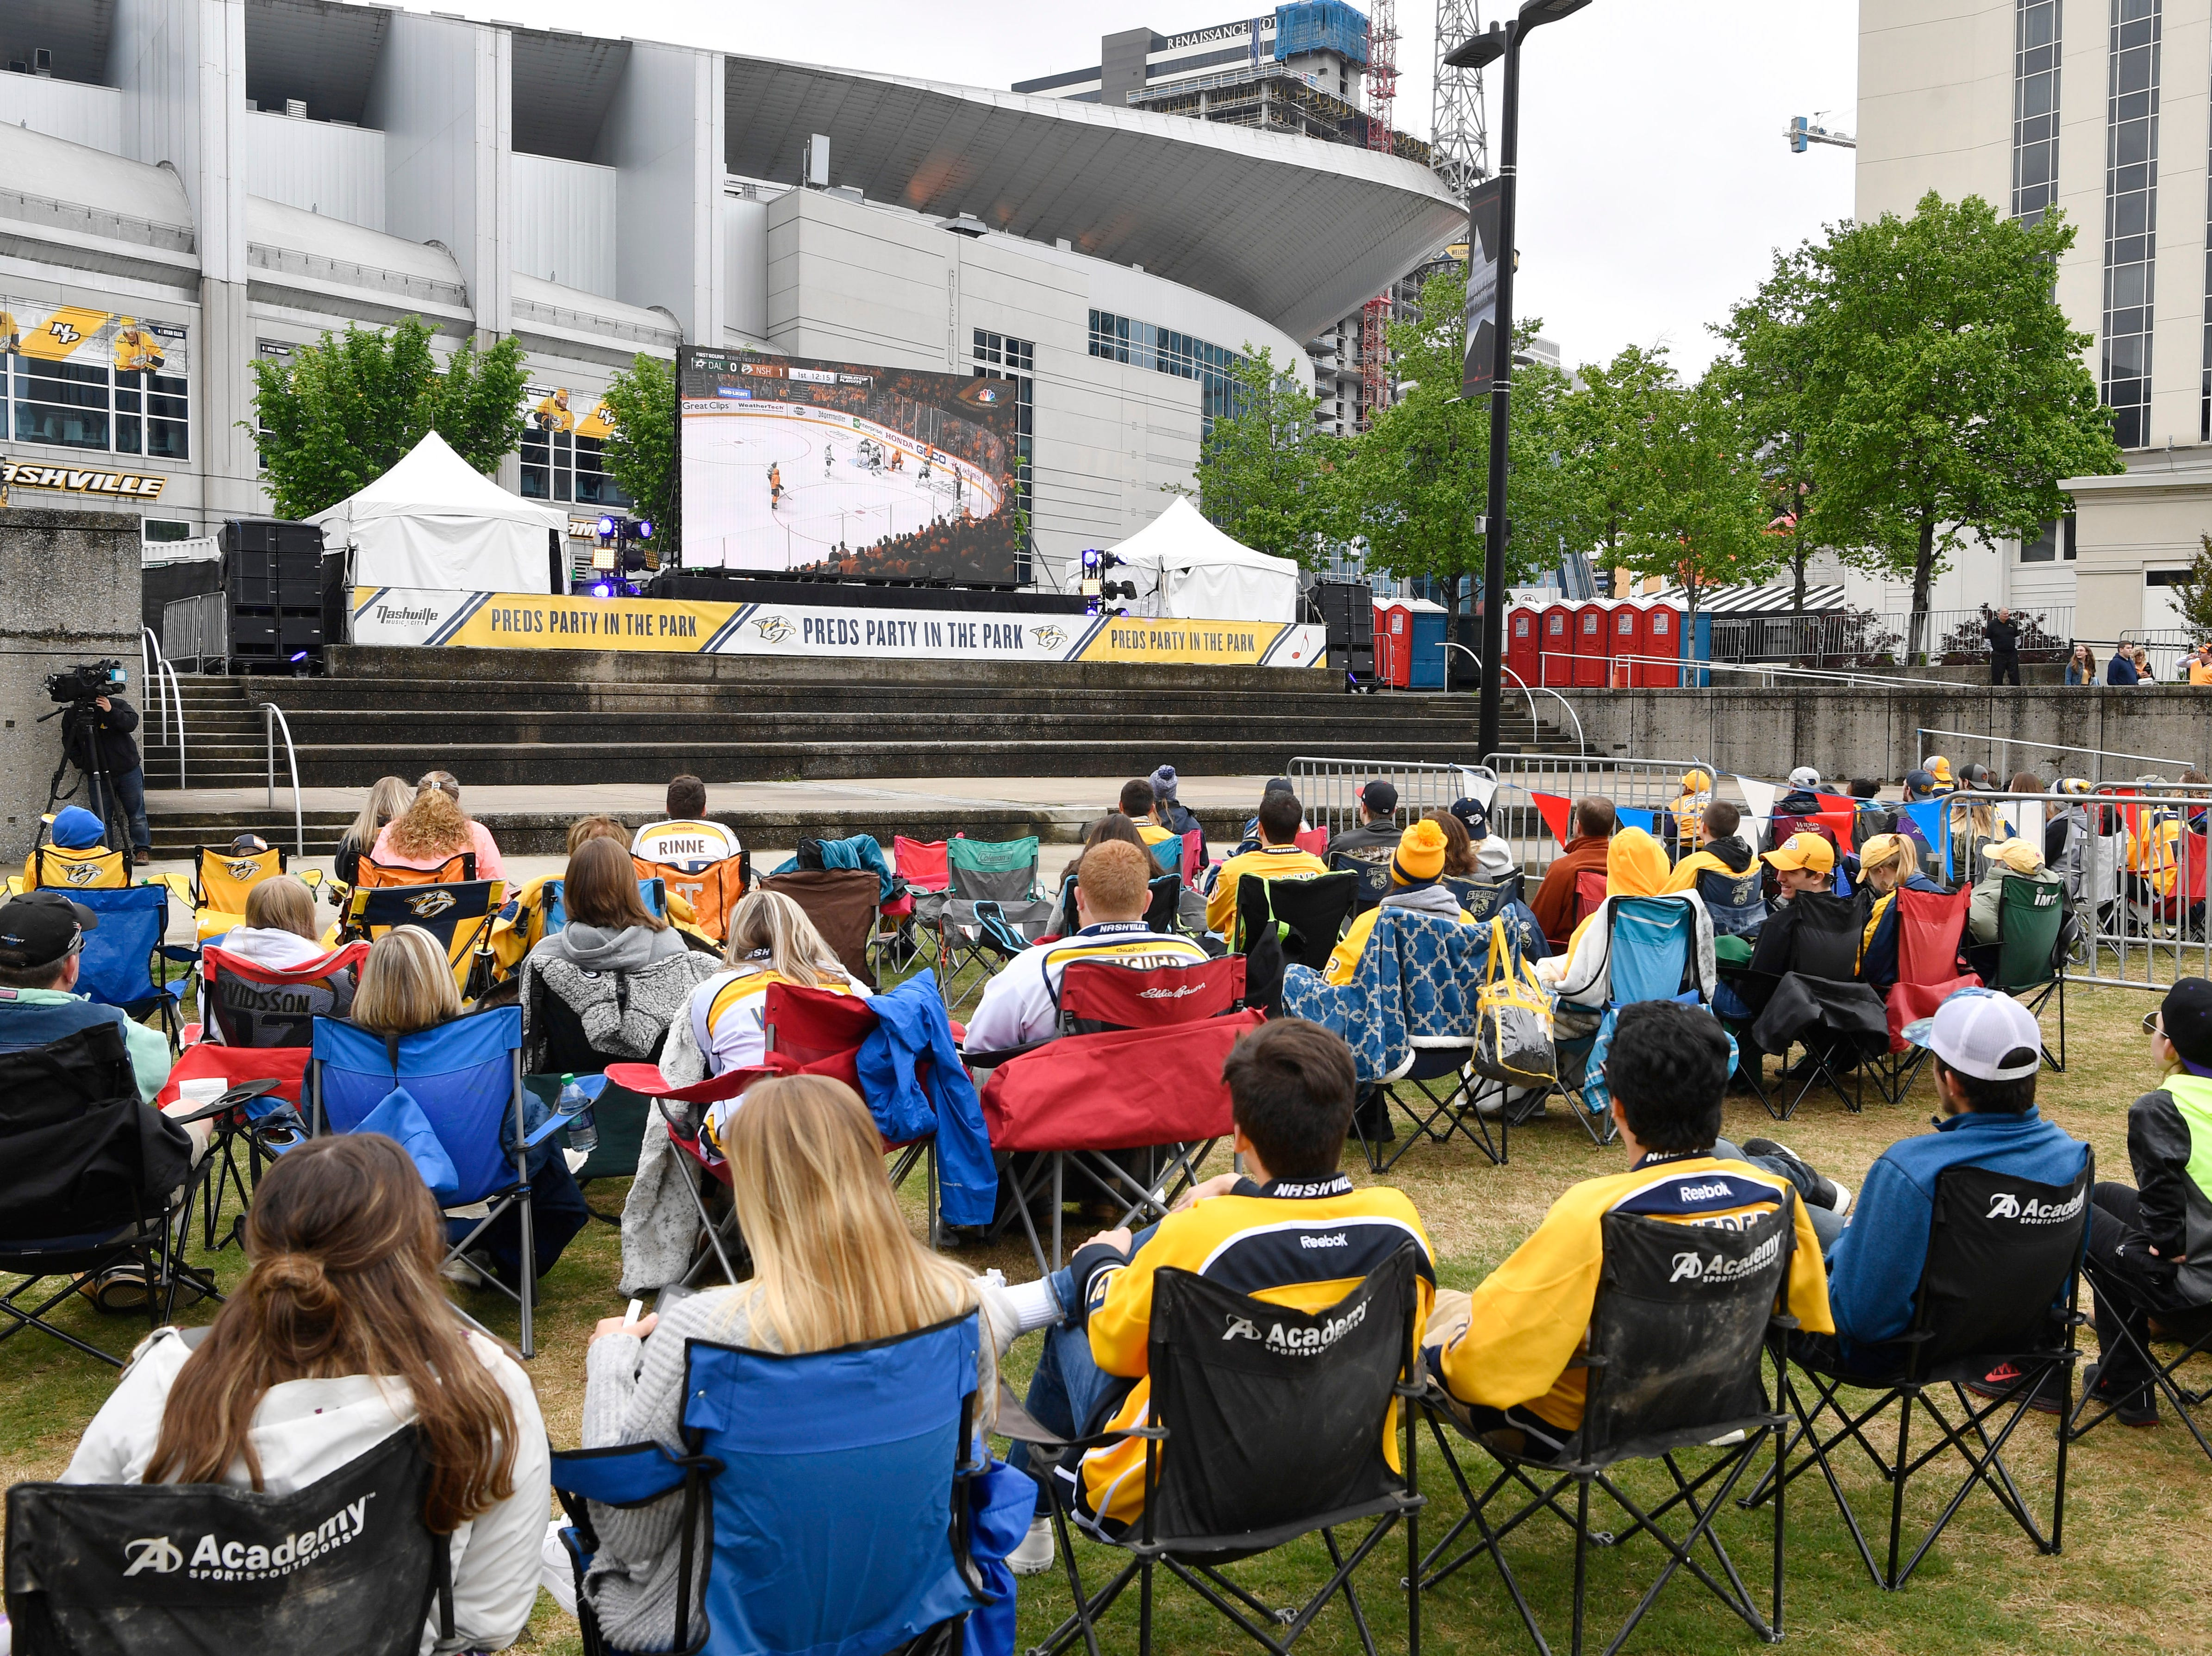 Fans line up their chairs to watch during the watch party of the divisional semifinal game against the Stars at Bridgestone ArenaSaturday, April 20, 2019, in Nashville, Tenn.